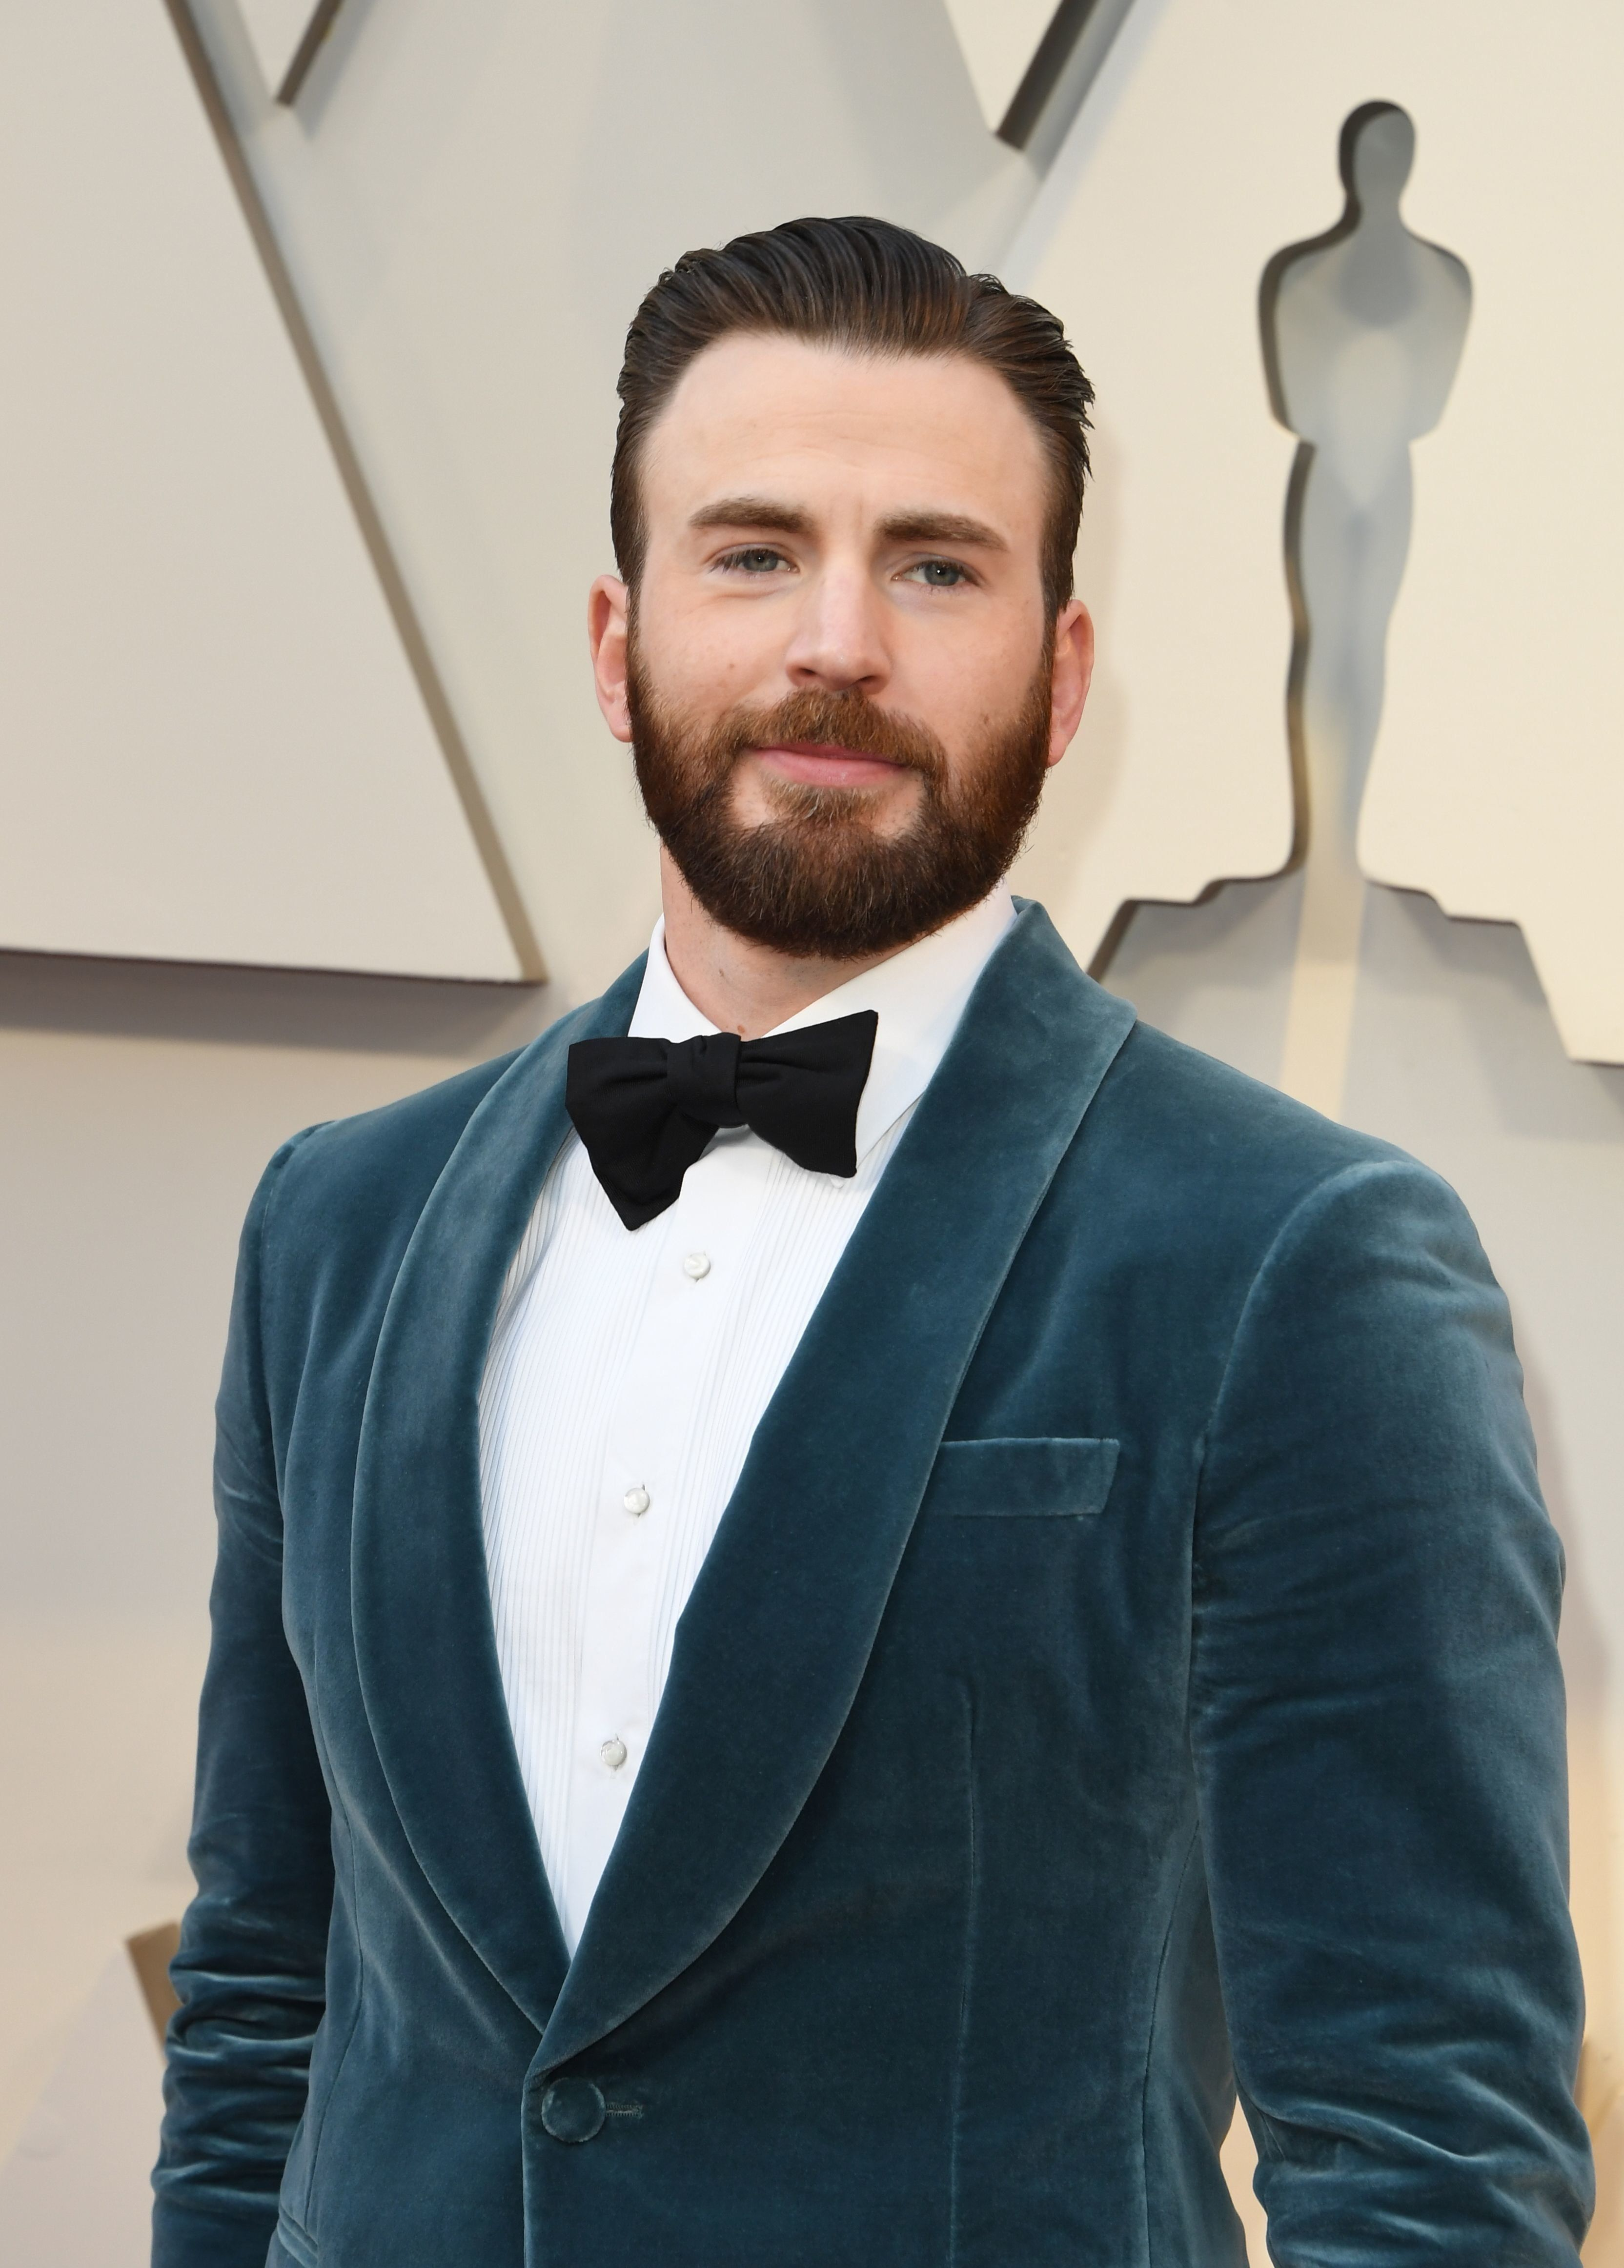 Actor Chris Evans arrives for the 91st Annual Academy Awards at the Dolby Theatre in Hollywood, California on February 24, 2019. (Photo by Mark RALSTON / AFP)        (Photo credit should read MARK RALSTON/AFP/Getty Images)